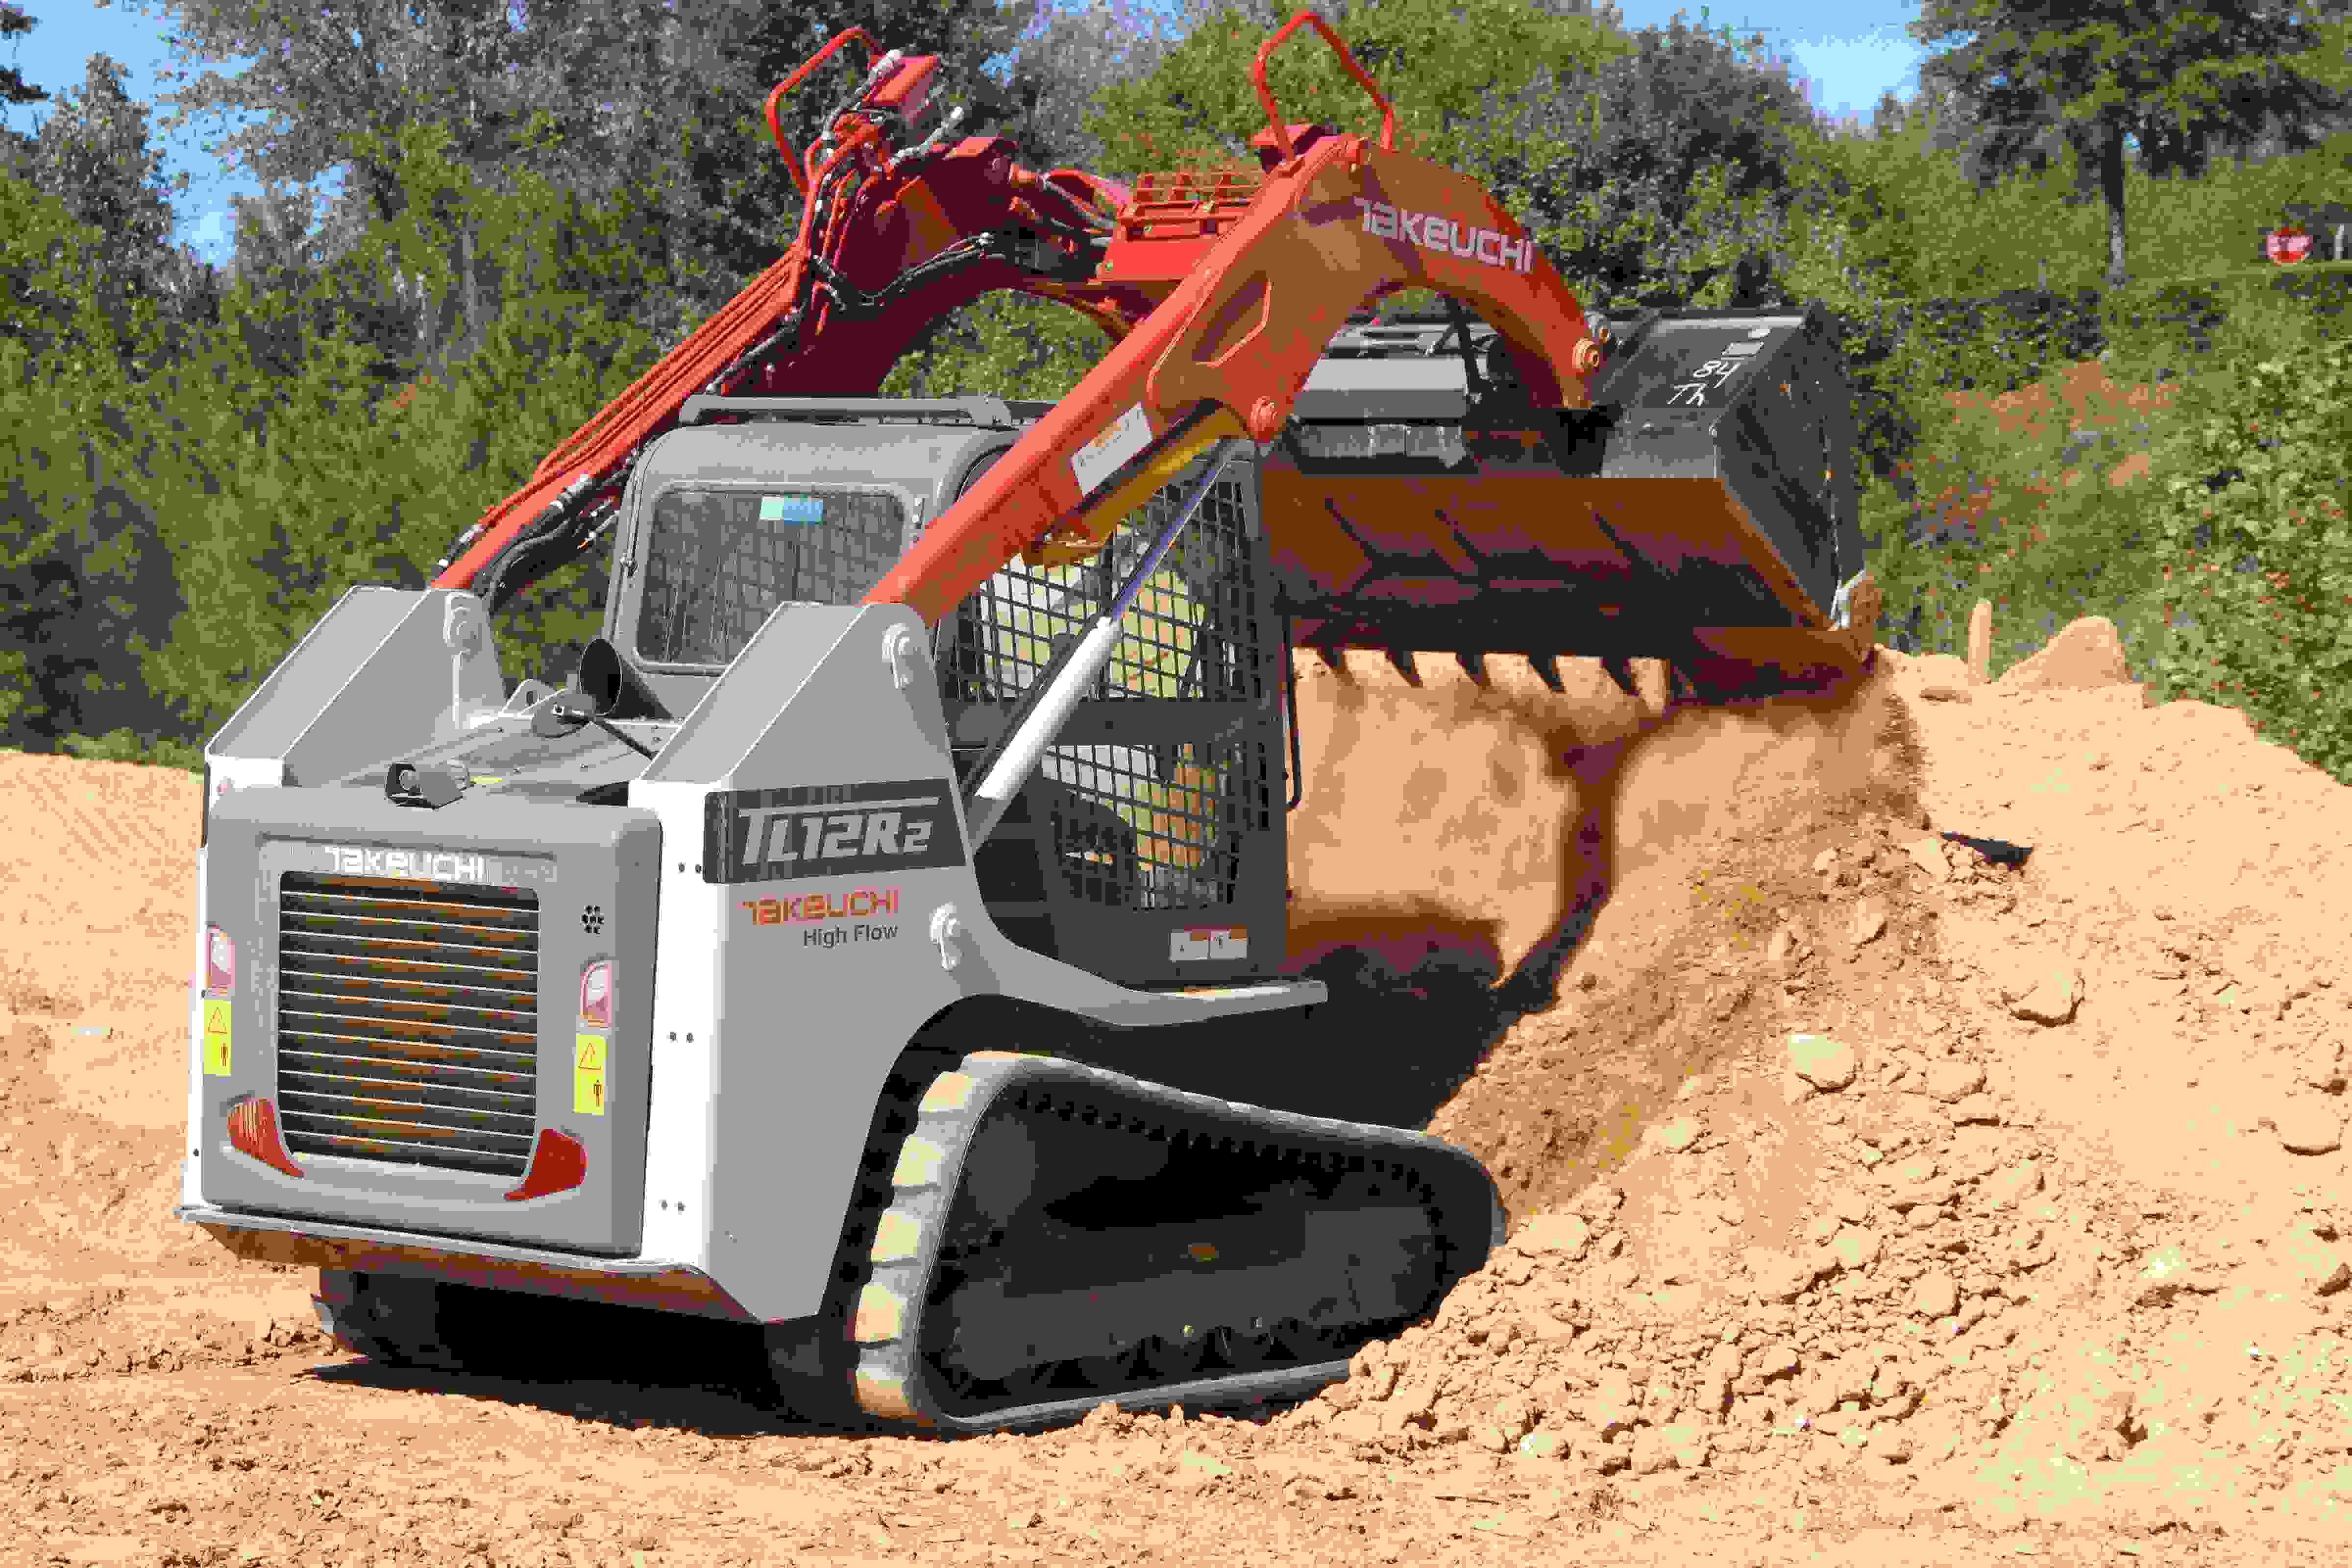 Takeuchi's new track loaders come with telematics system